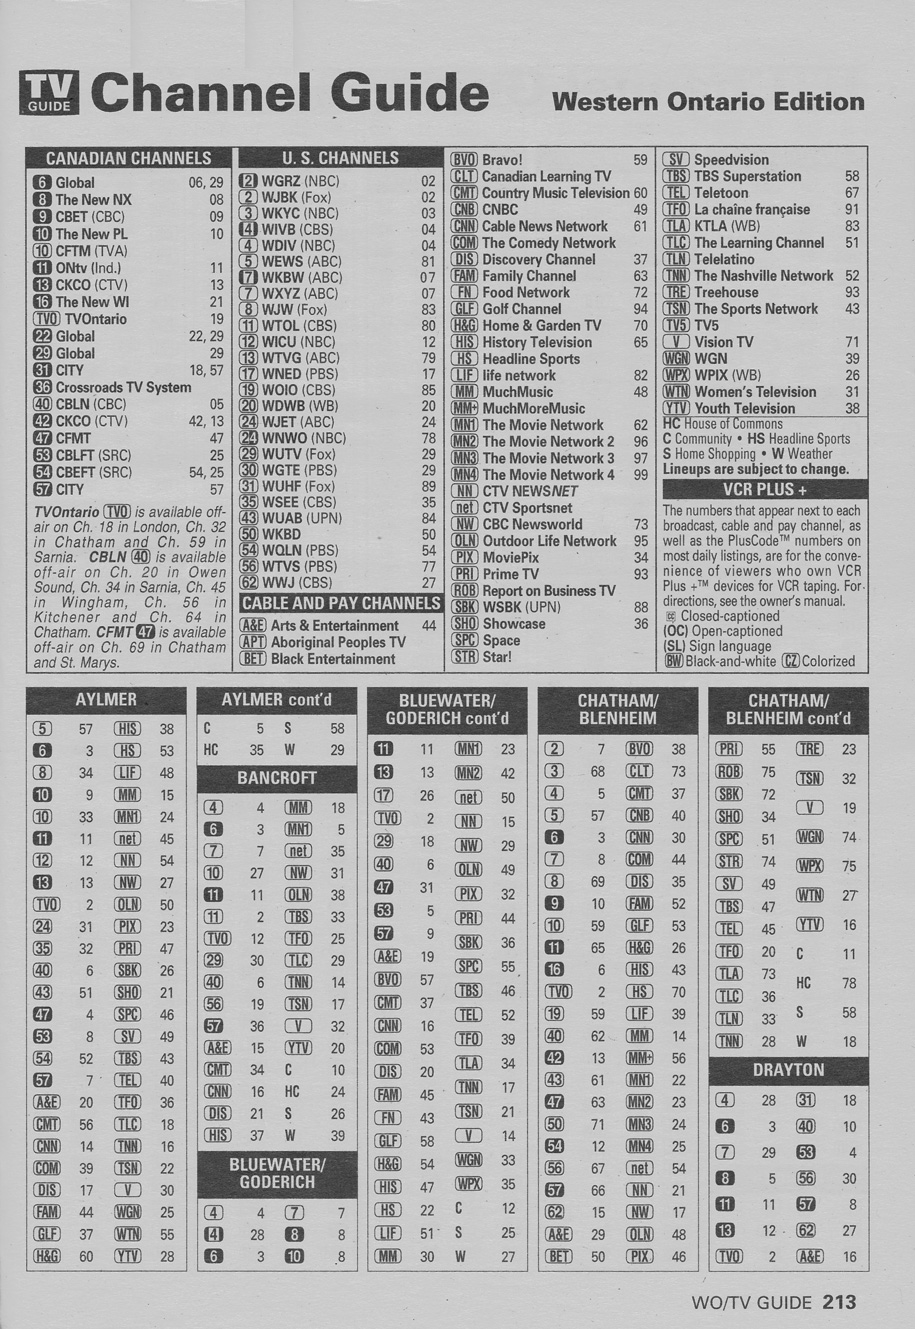 TV Guide November 27 1999 Western Ontario Edition Channel Guide